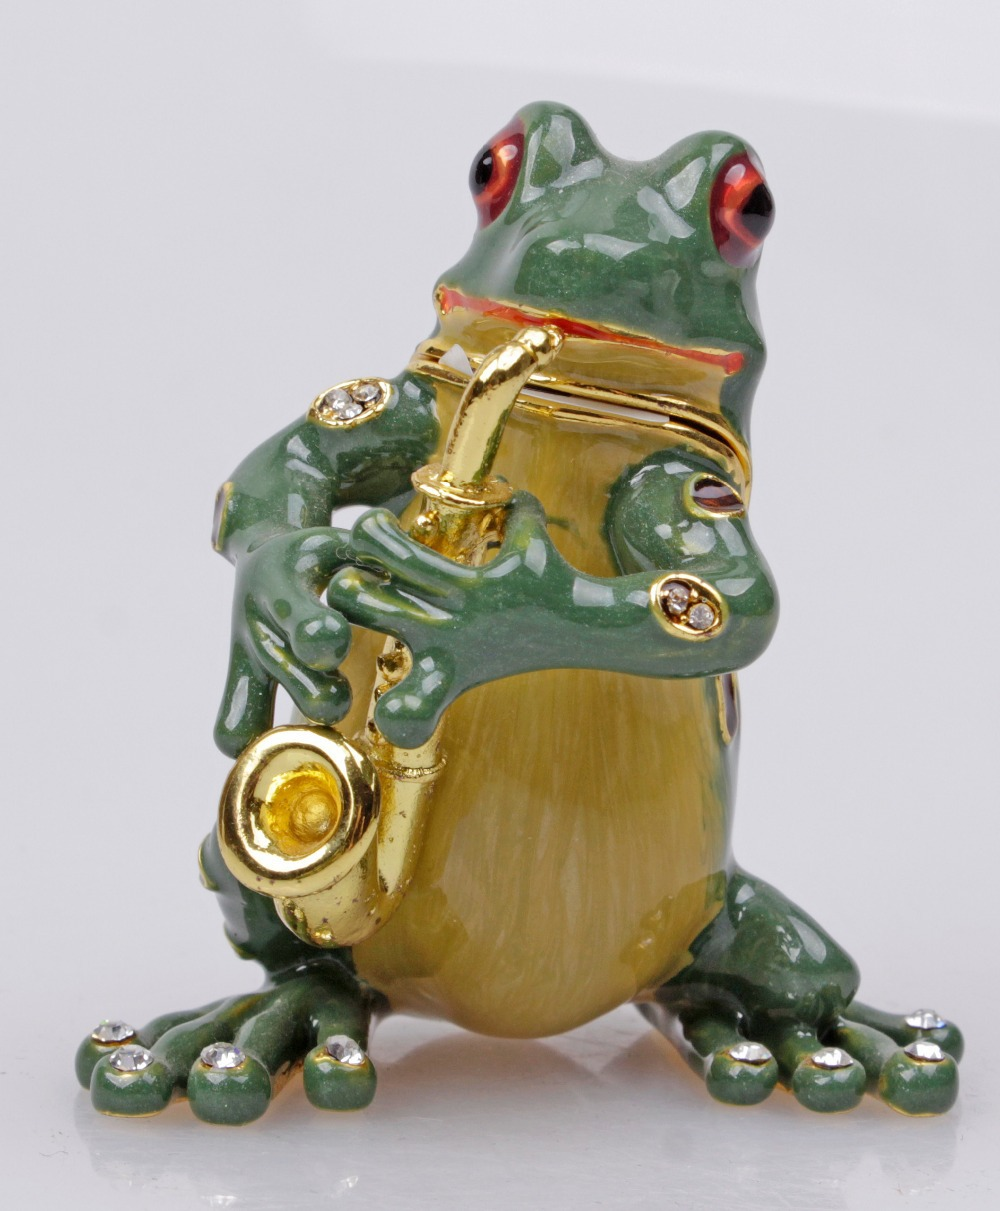 Gorgeous Frog Playing Saxophone Jewelled Trinket Box Jewelry Box with Inlaid Crystal, Pill Box Figurine